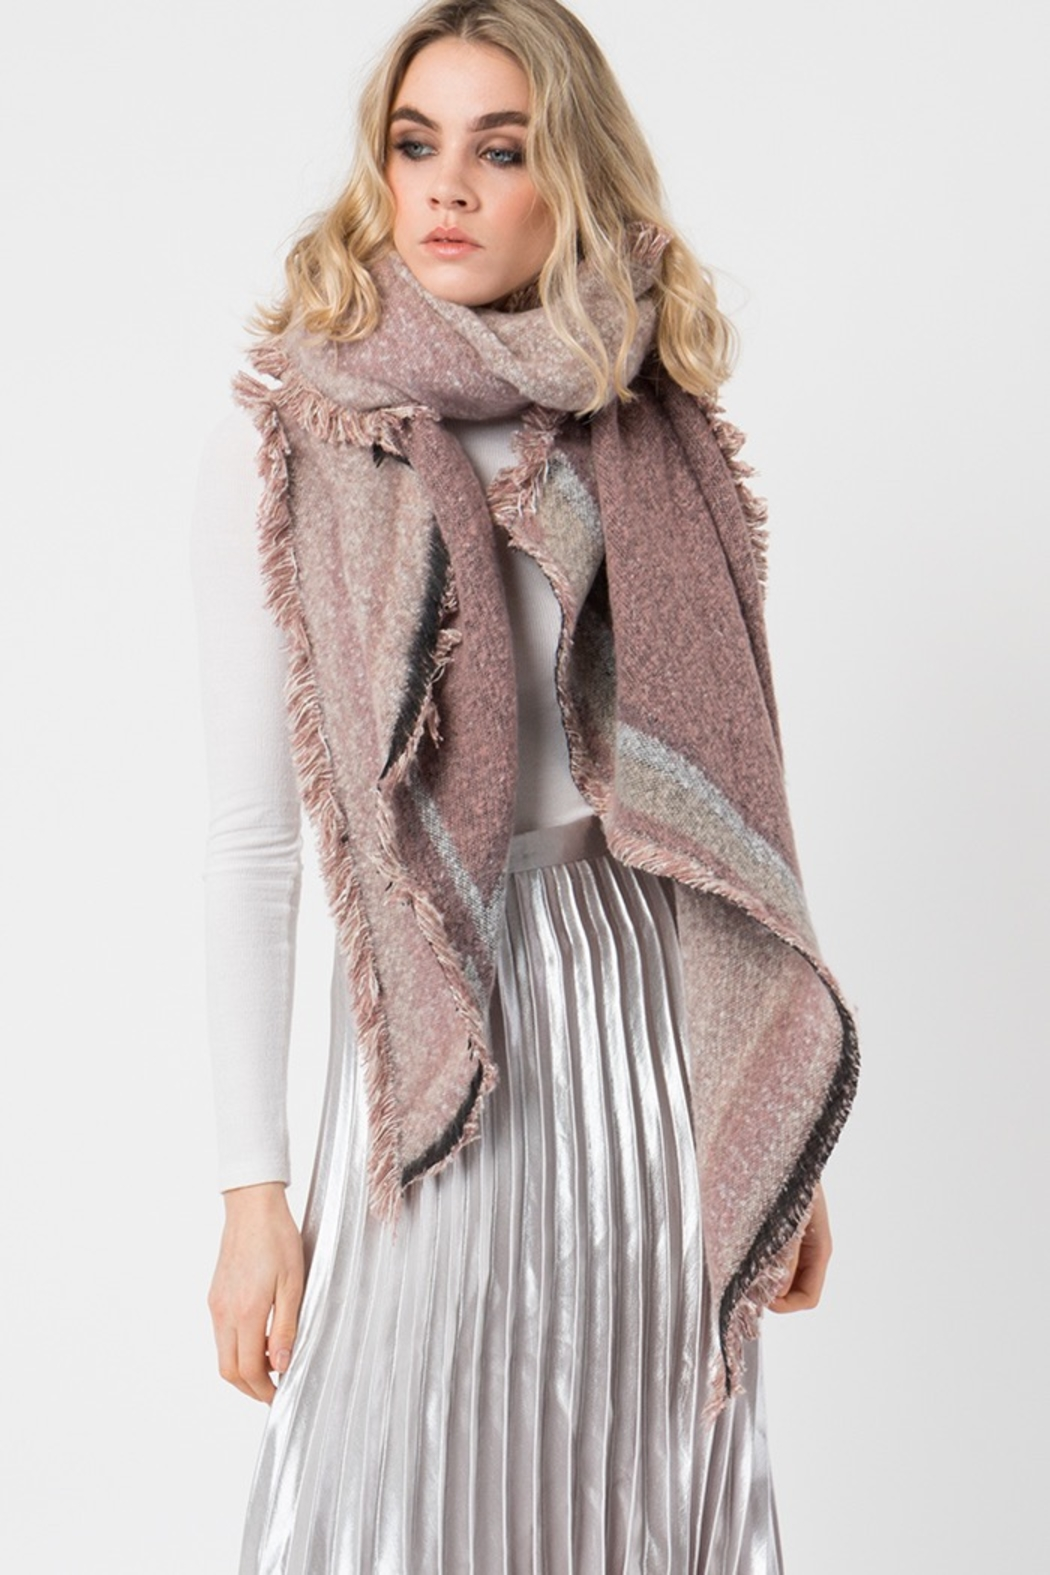 Pia Rossini BEXLEY SCARF - Front Cropped Image